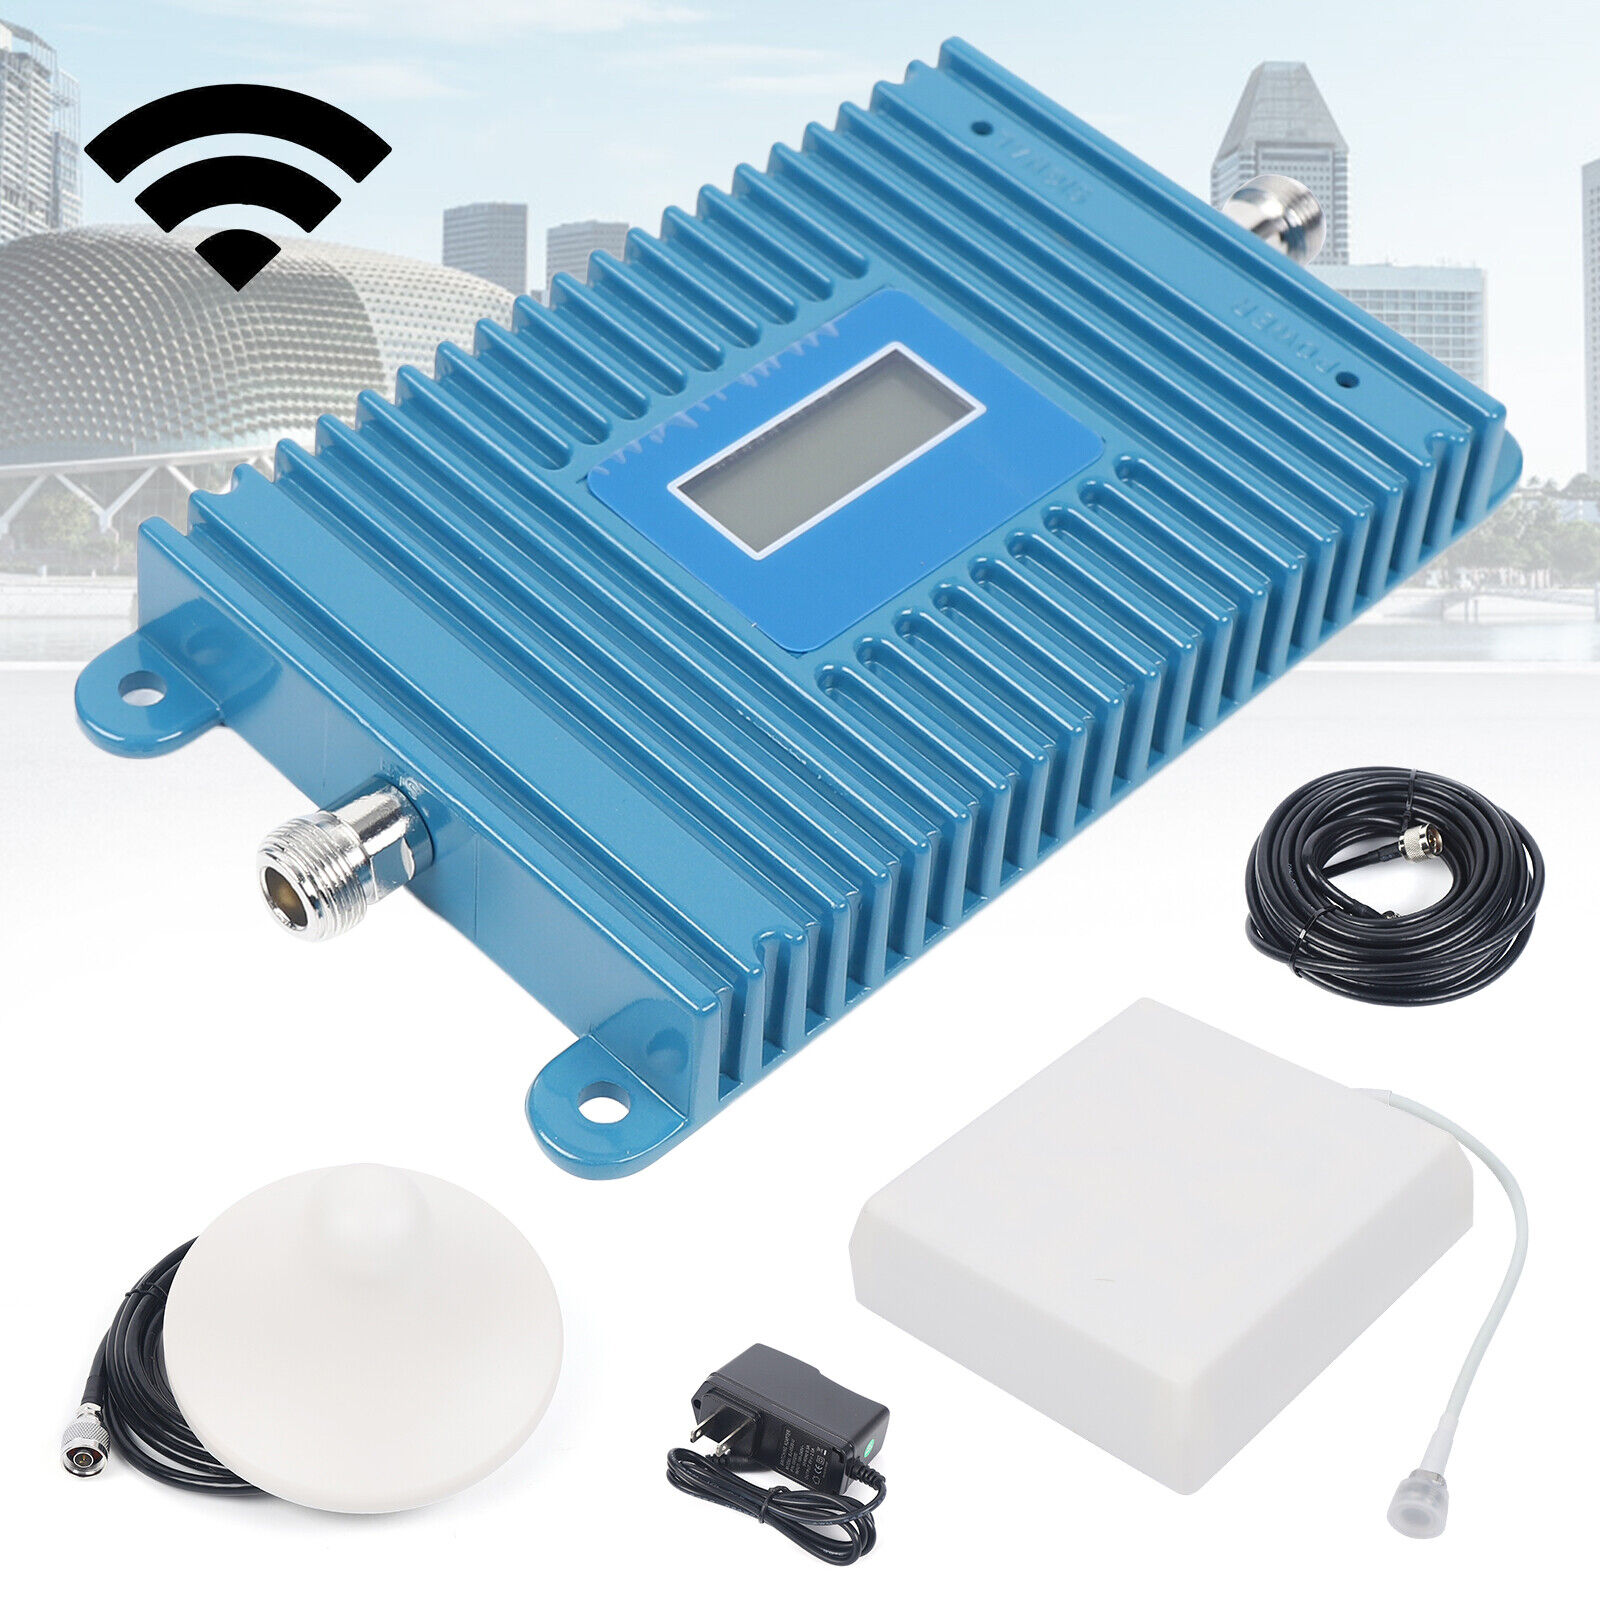 700MHz GSM 4G LTE Cell Phone Signal Booster Repeater Amplifier +Yagi Antena Kit. Available Now for 115.52